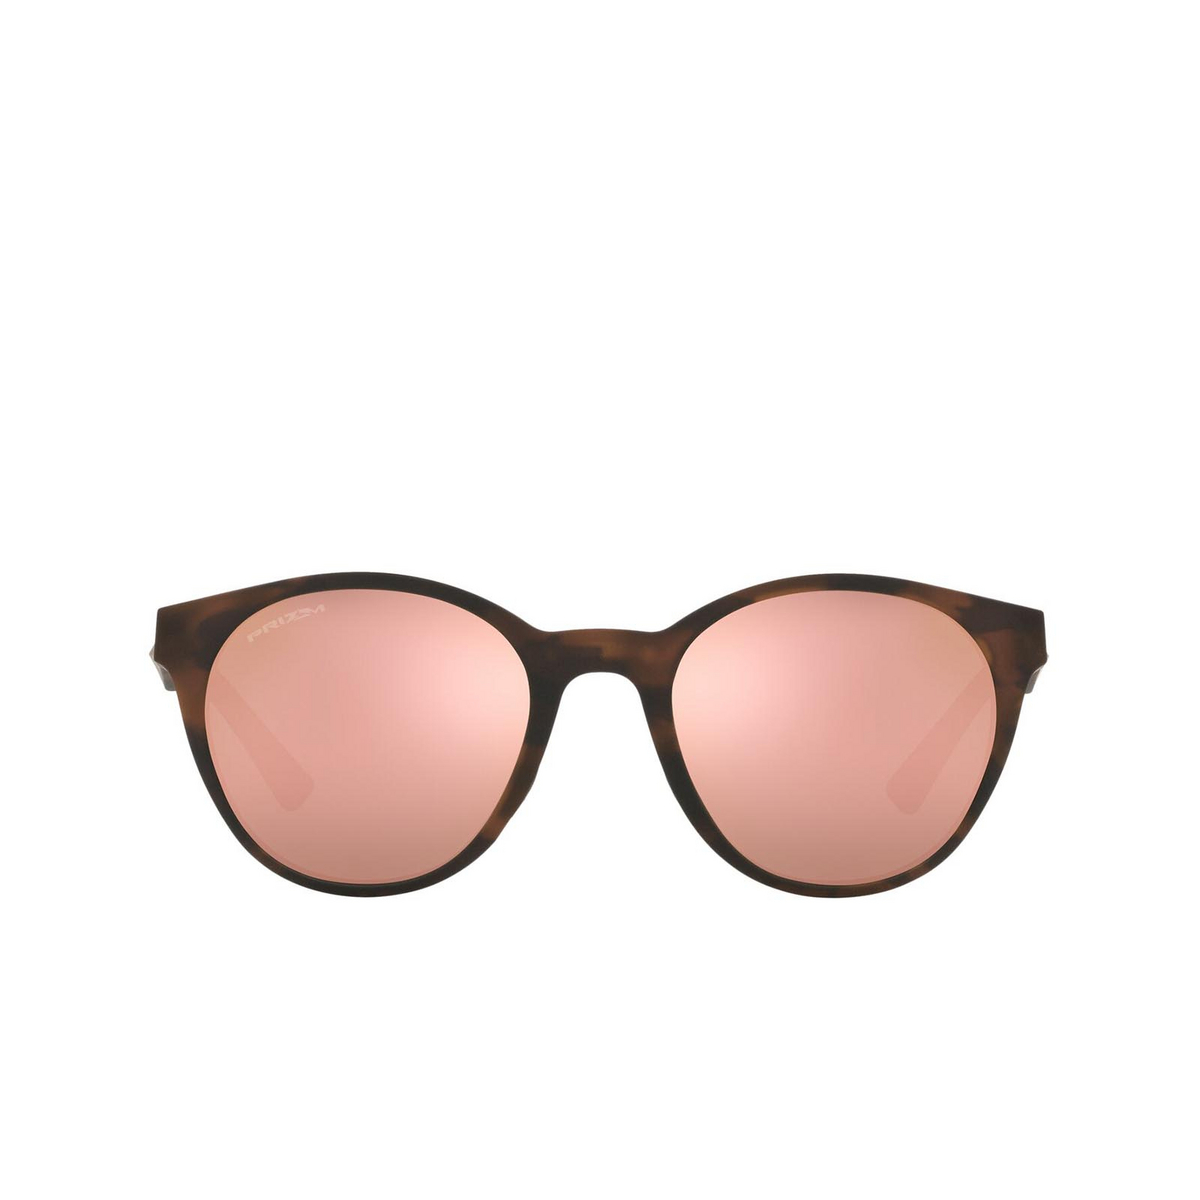 Oakley® Round Sunglasses: Spindrift OO9474 color Matte Brown Tortoise 947401 - front view.